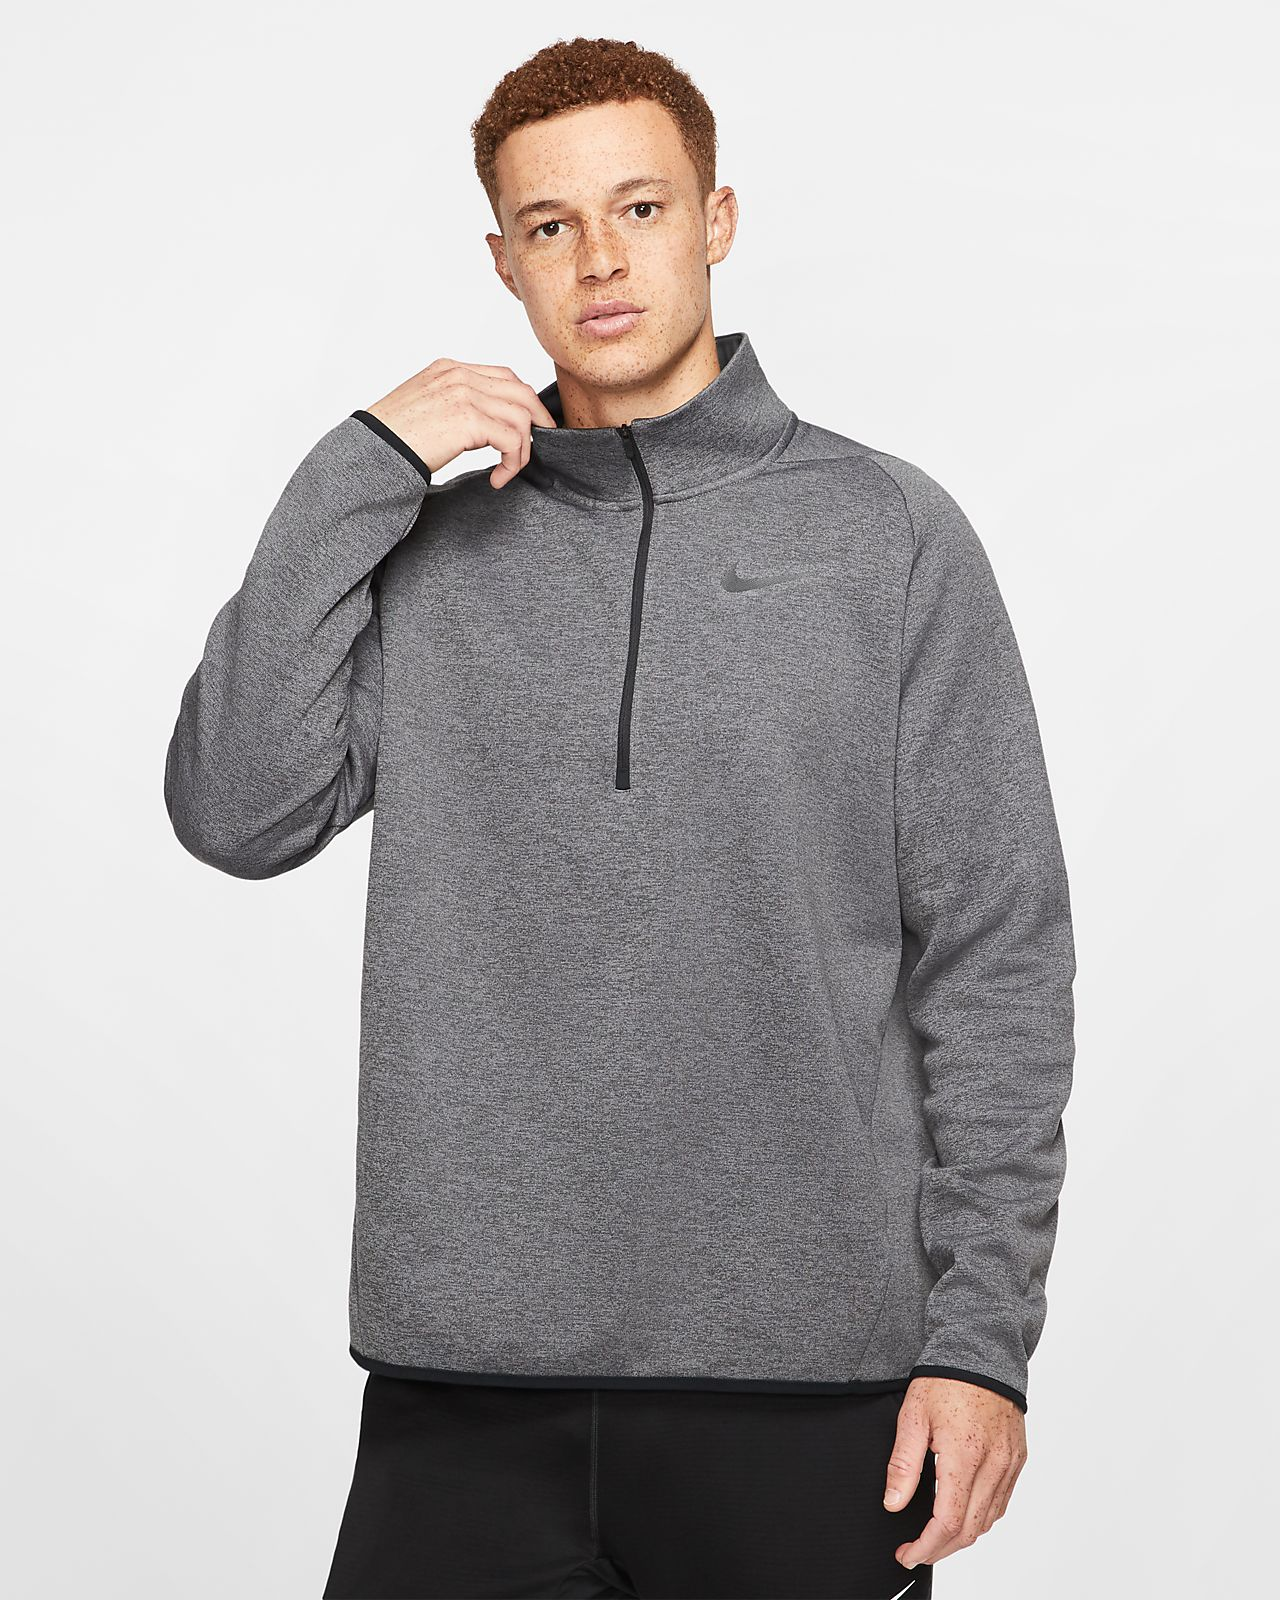 Bstge Mens Protection Performance Long Sleeve Hoody with Pocket